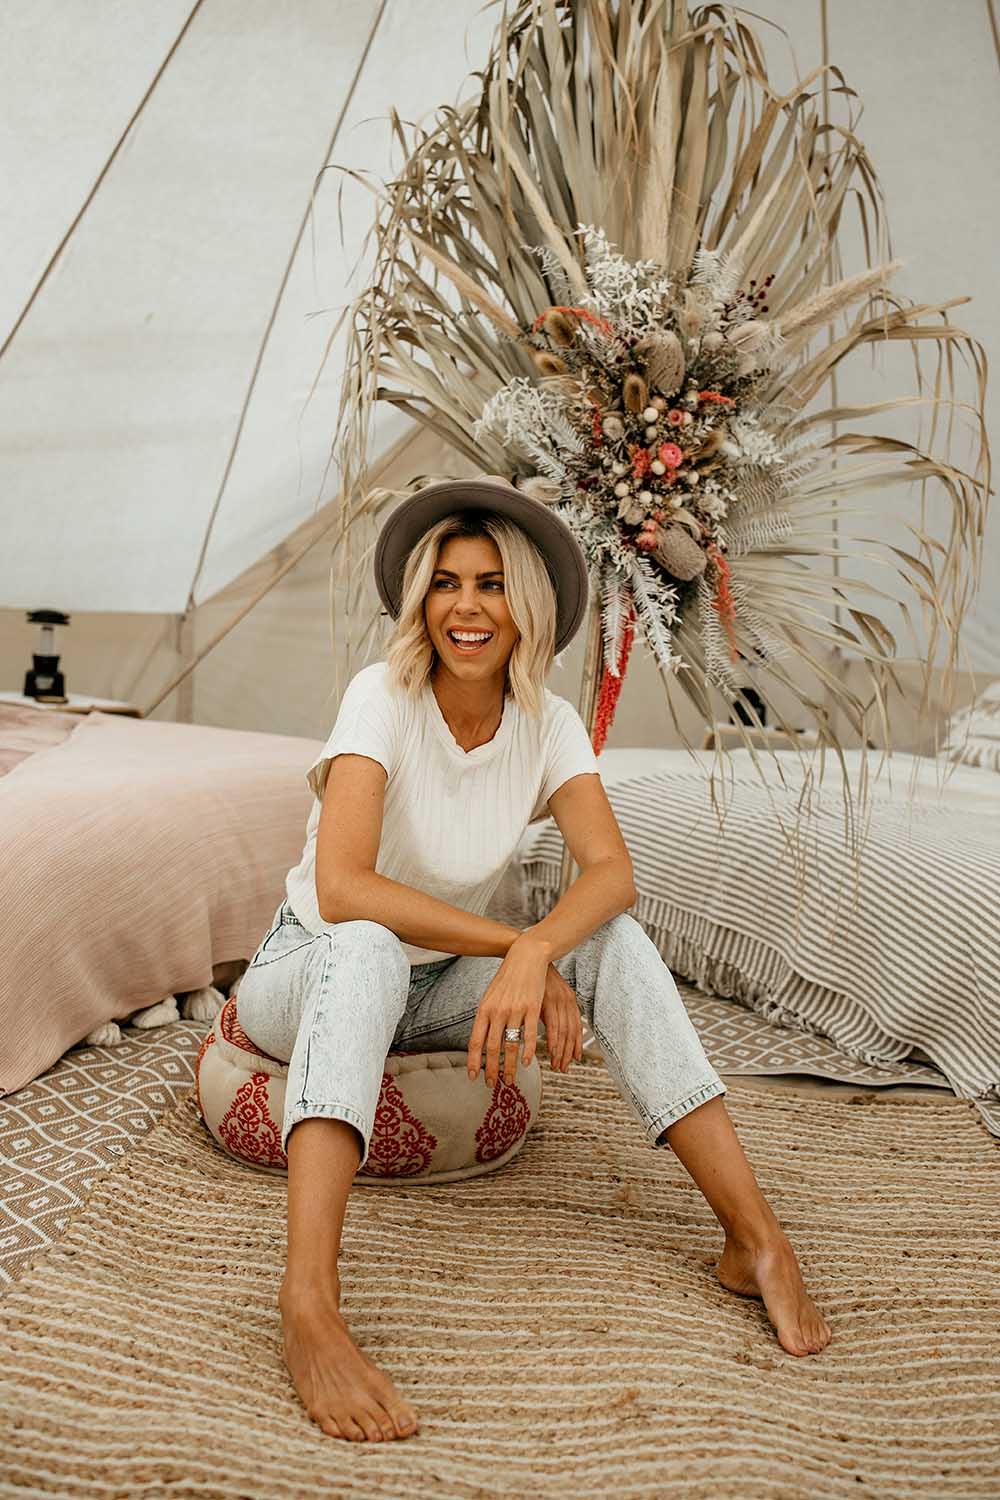 Fashion model laughing sitting in a bohemian setting in a bell tent - glamping - lifestyle photographer - business branding photography - Nambucca valley photographer - Bellingen photographer - Coffs coast photographer